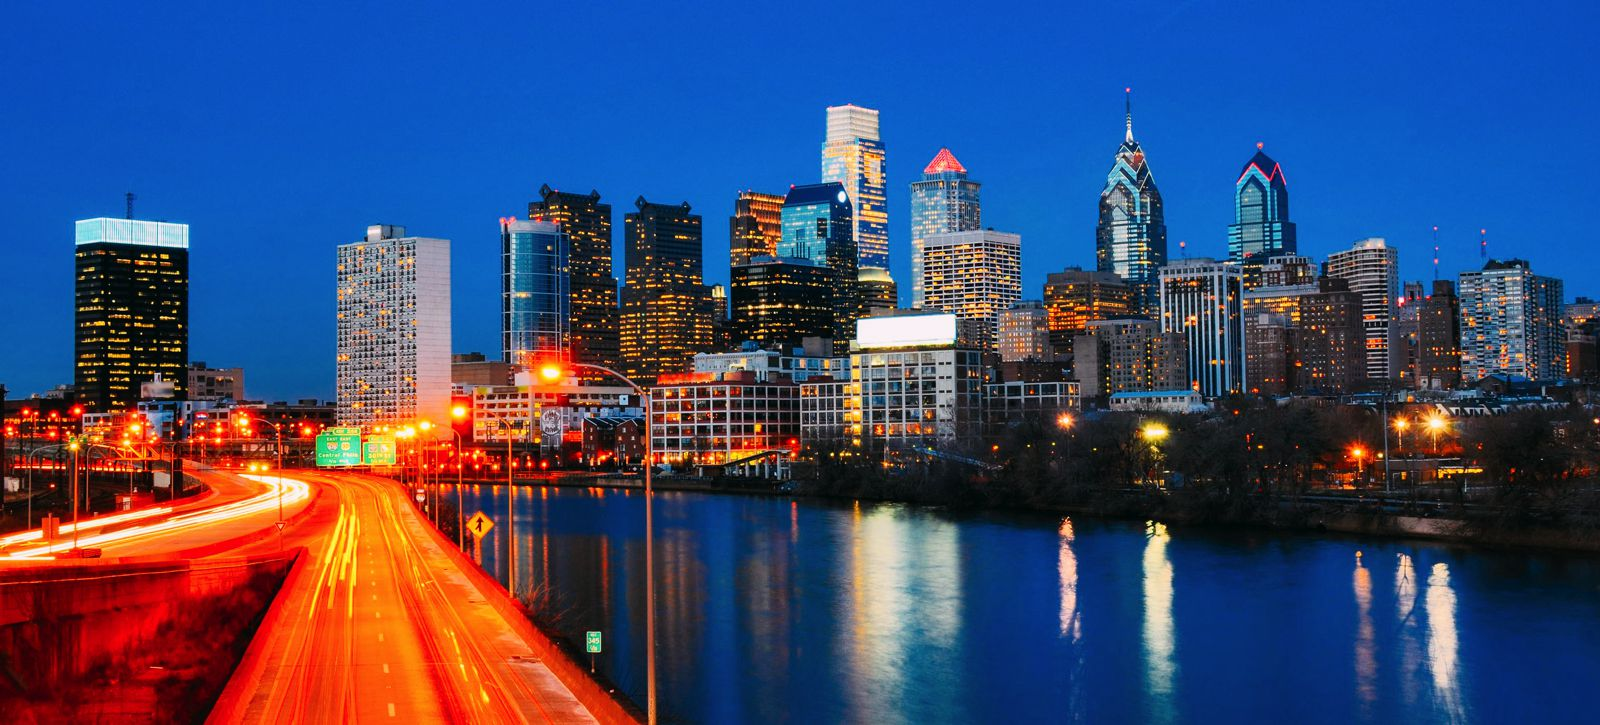 15 Of The Cheapest Cities In The USA That You Need To Visit (11)